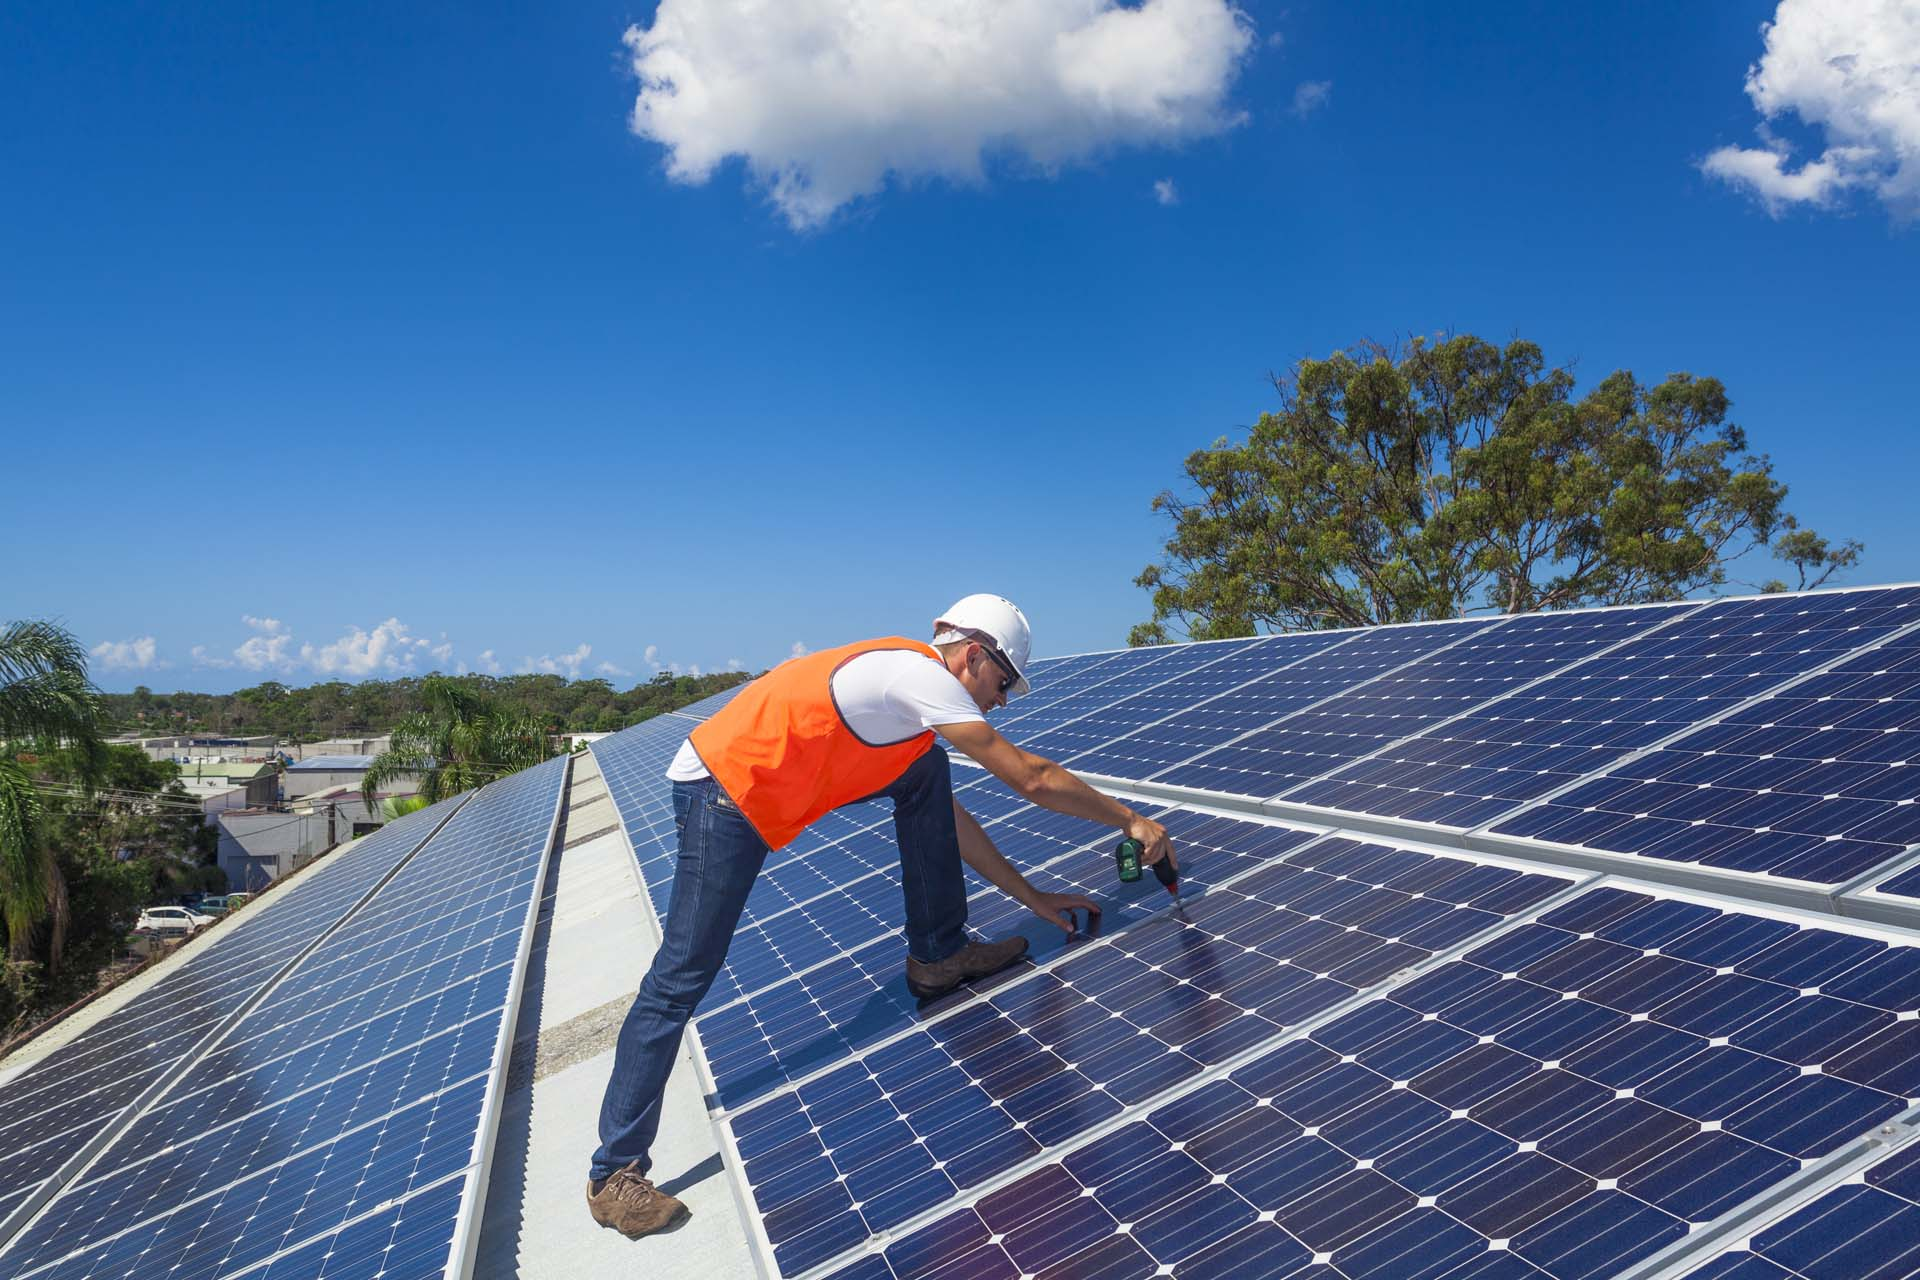 man working on a solar panel.